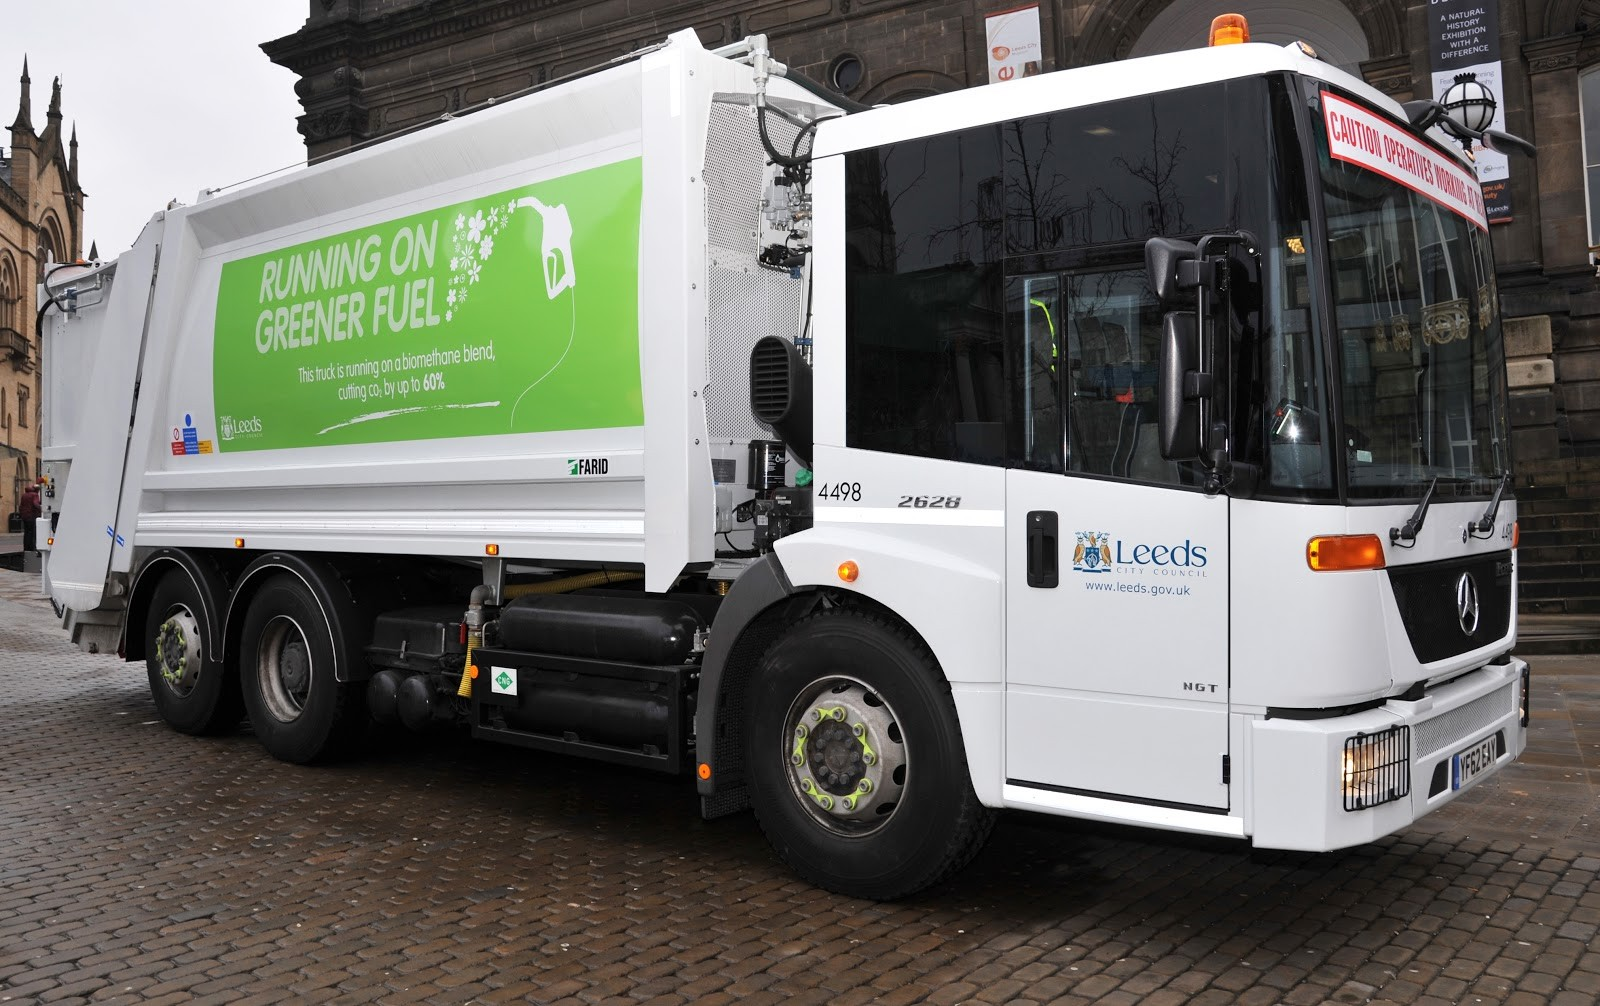 One of the council's bin wagons that runs on greener fuel